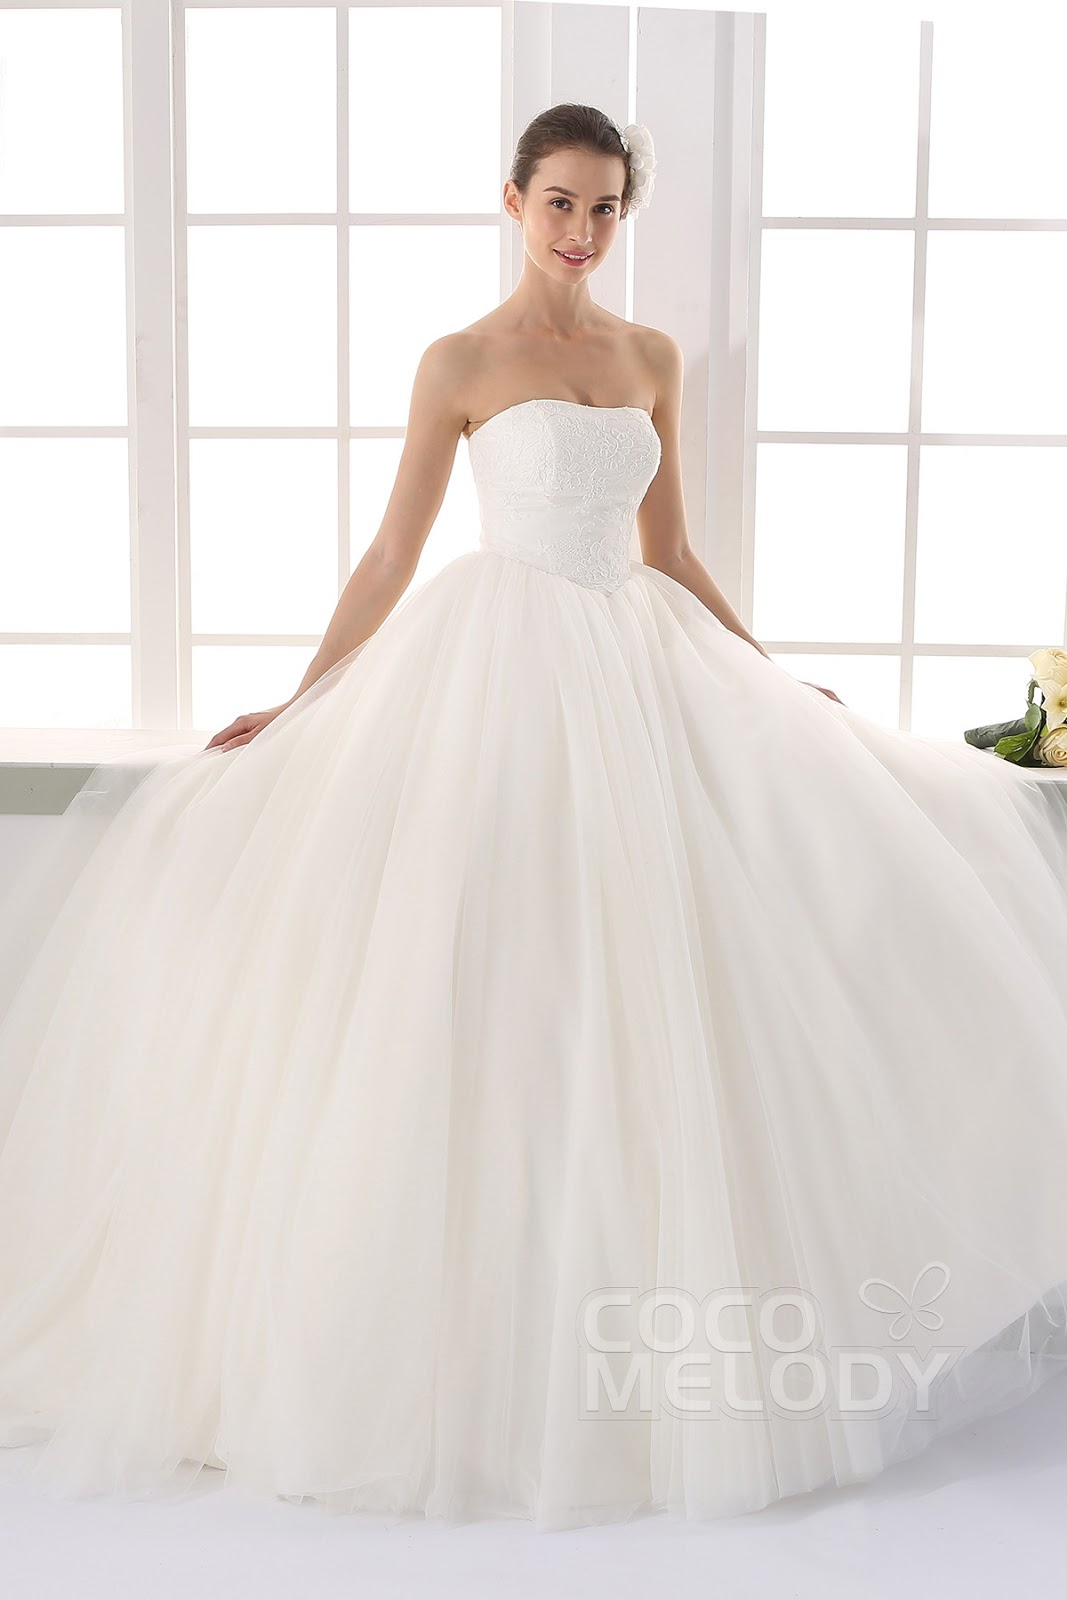 New Style Asymmetrical Sweetheart Natural Train Organza White Sleeveless  Zipper Wedding Dress With Beading And Flower   The Make And Style Of This  Dress, ...